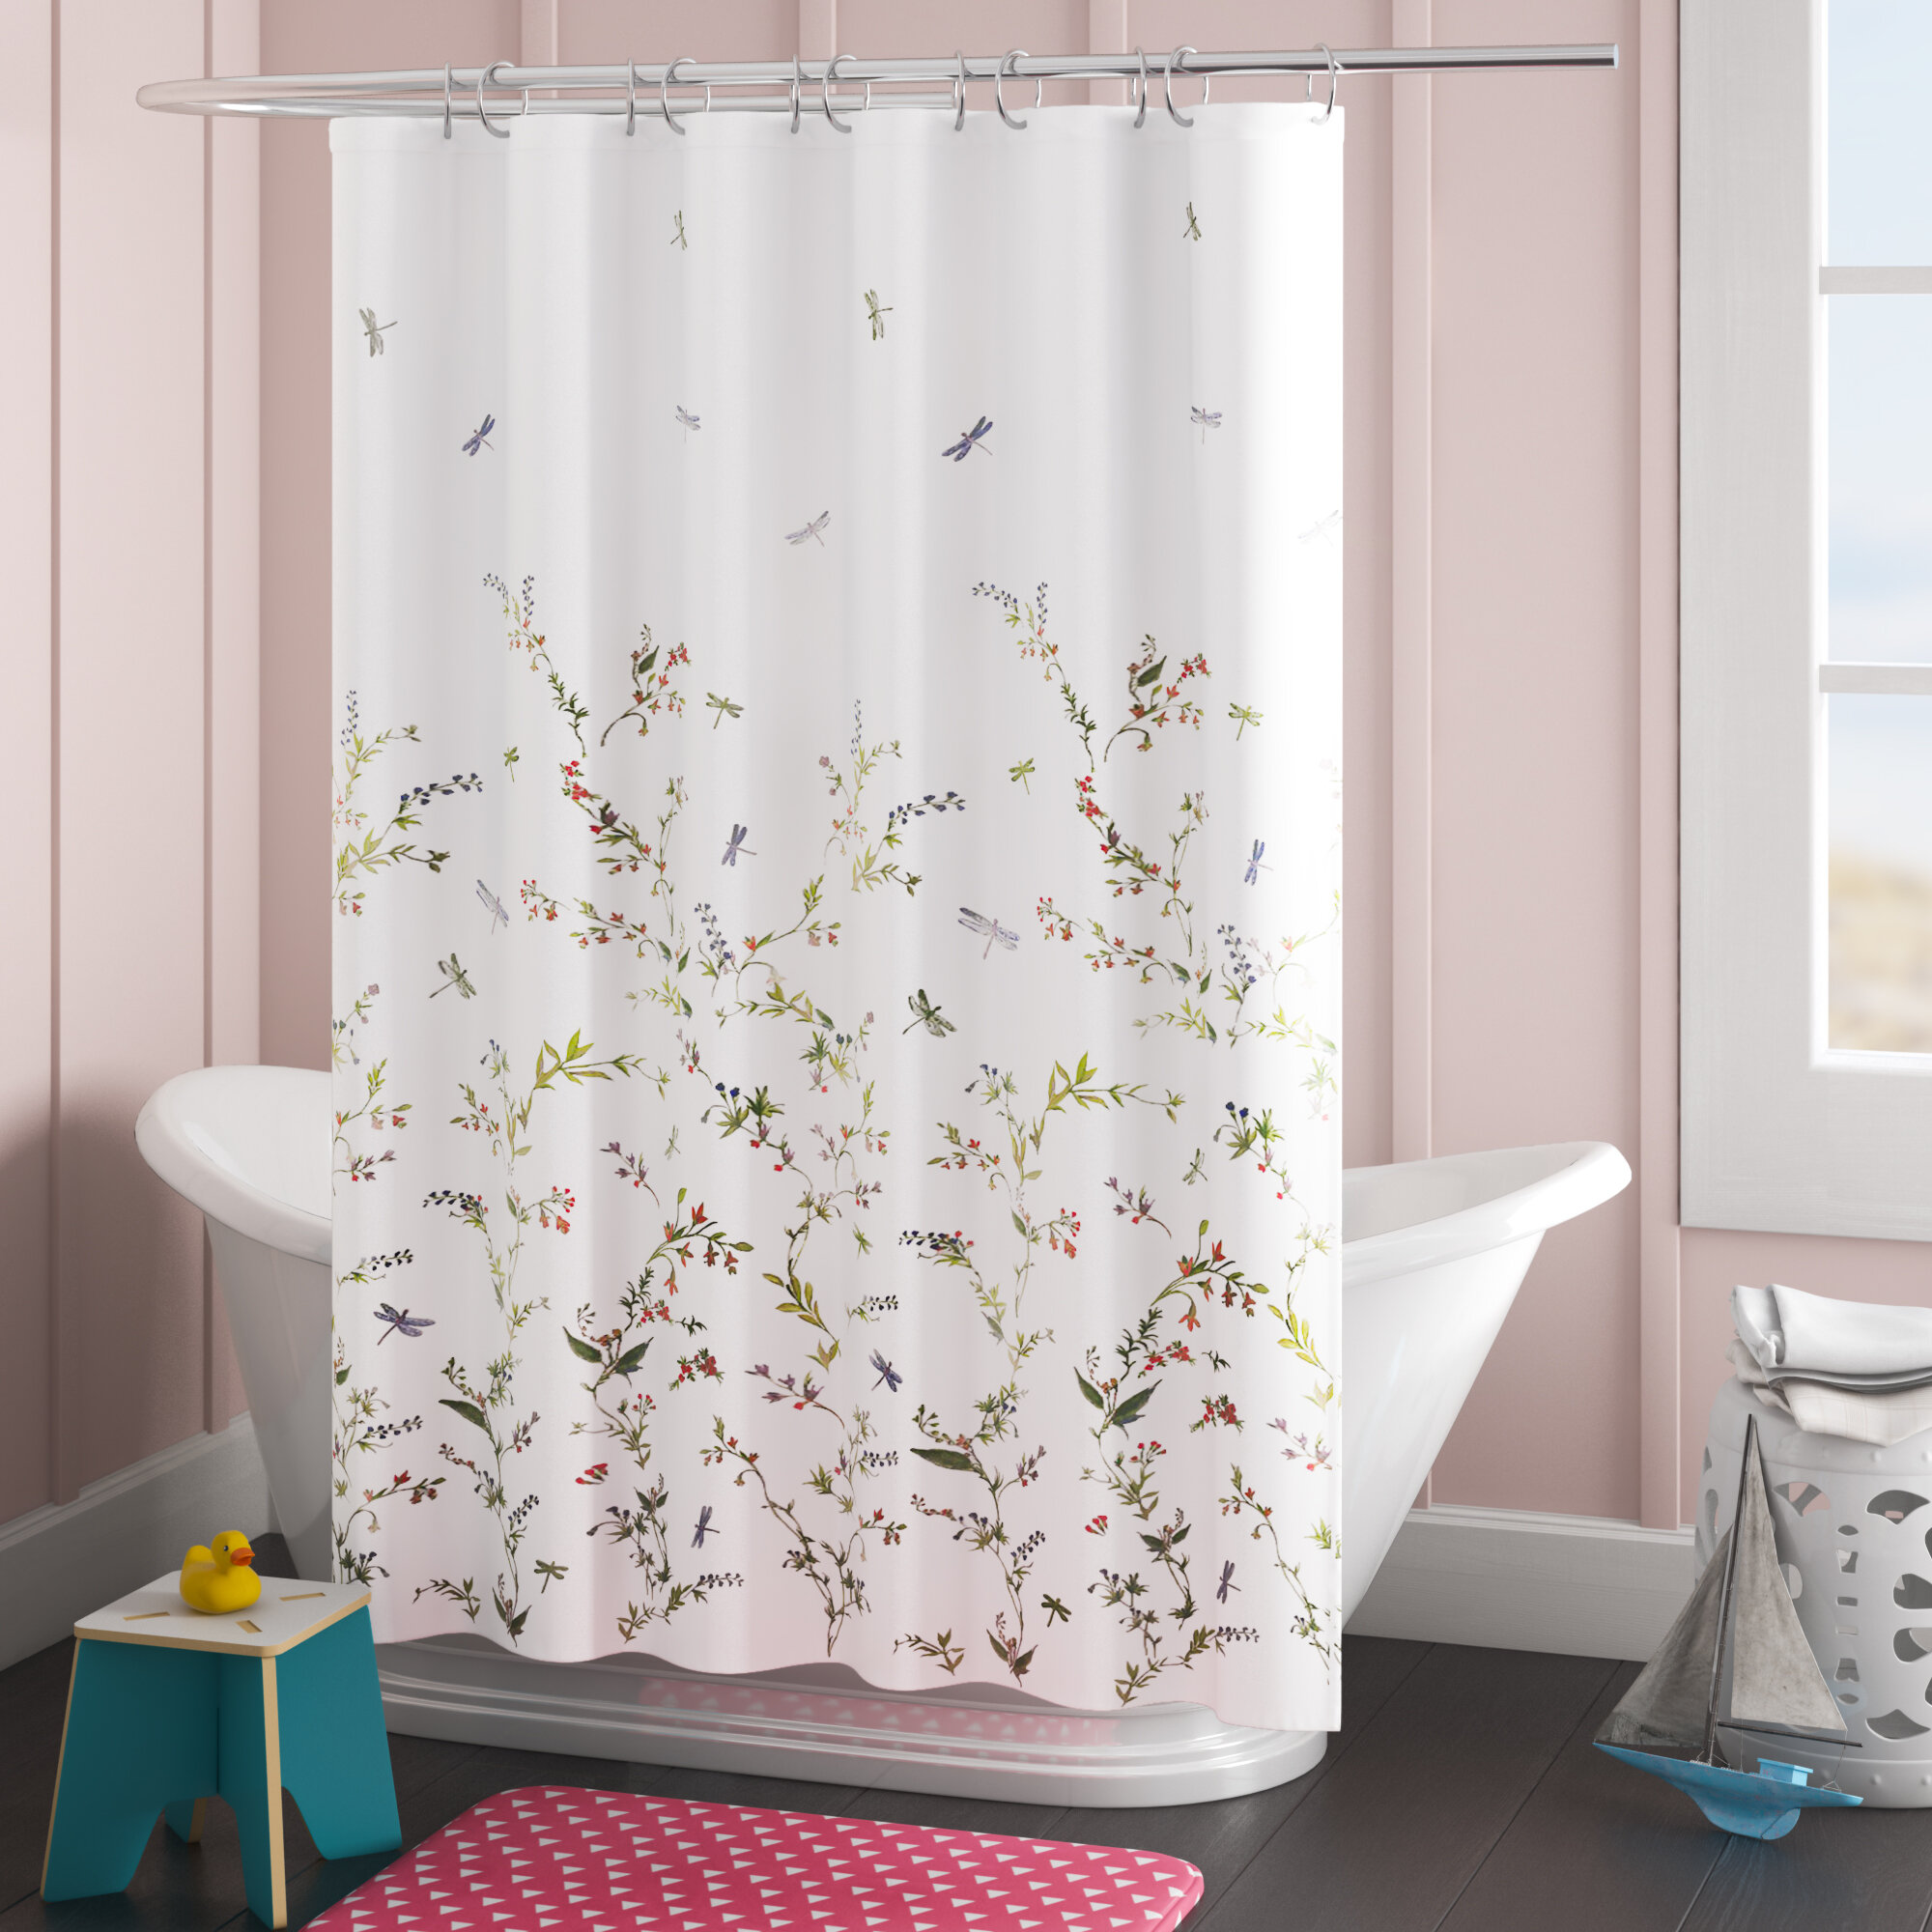 Donell Dragonfly Garden Fabric Single Shower Curtain